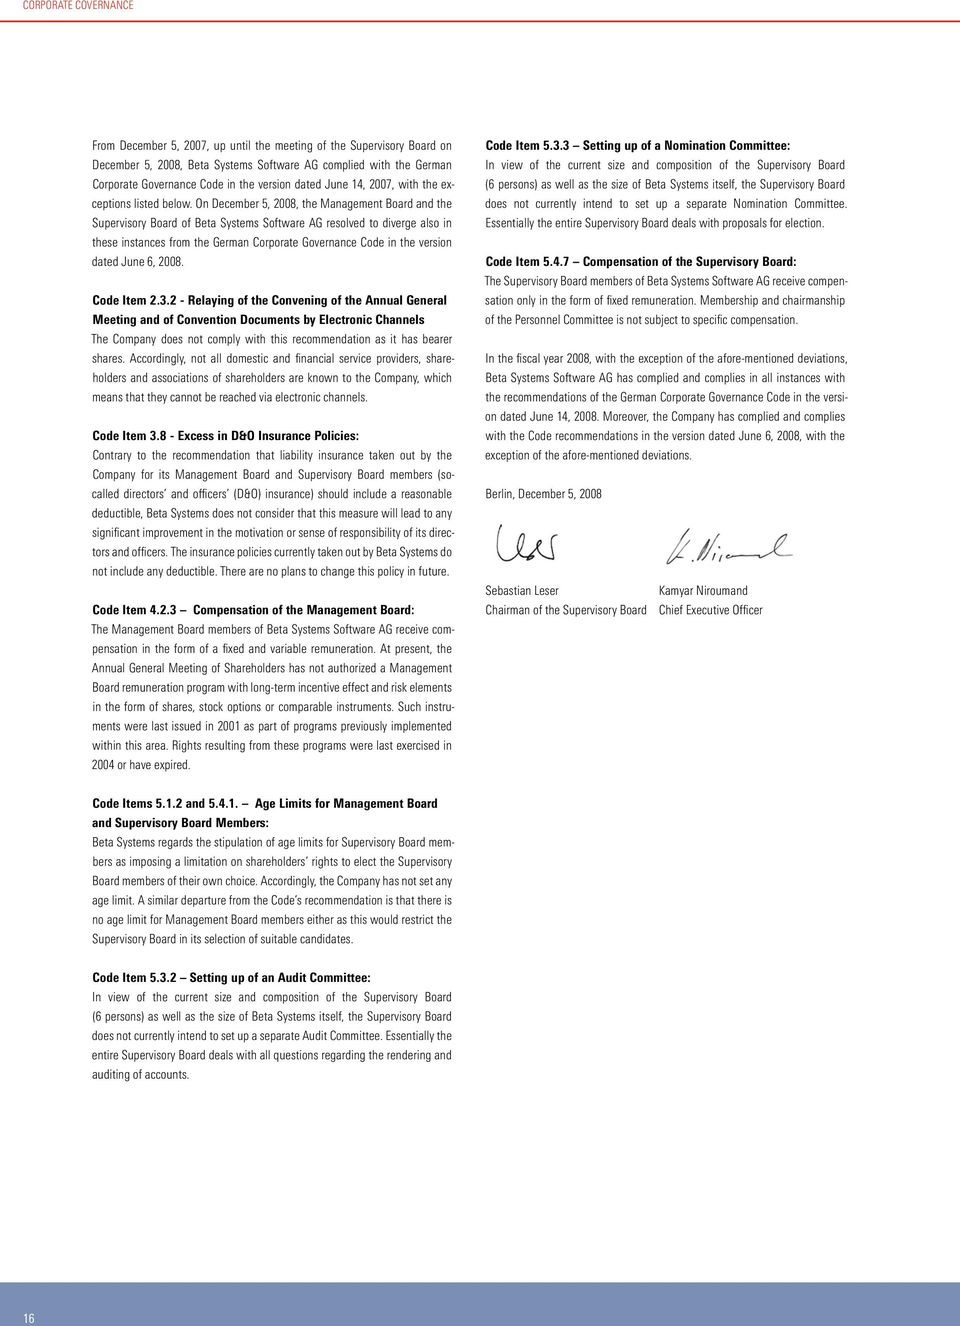 On December 5, 2008, the Management Board and the Supervisory Board of Beta Systems Software AG resolved to diverge also in these instances from the German Corporate Governance Code in the version